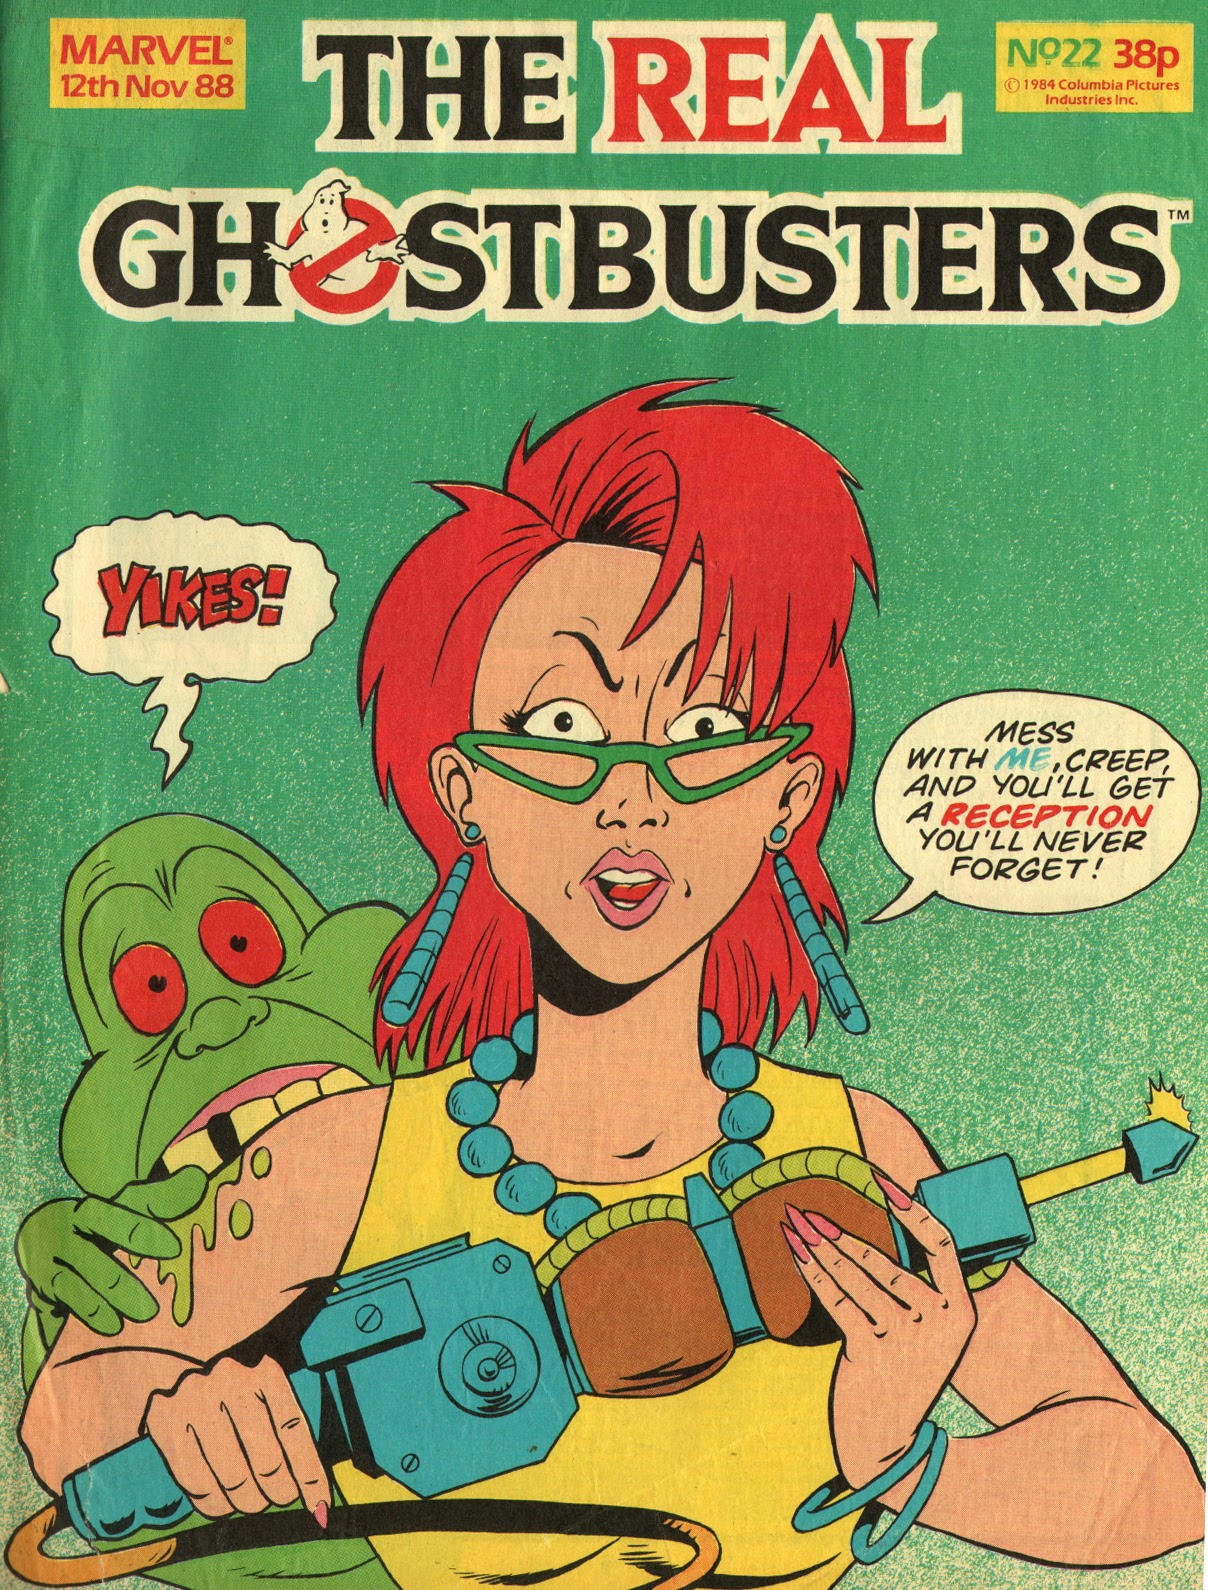 The Real Ghostbusters 22 Page 1